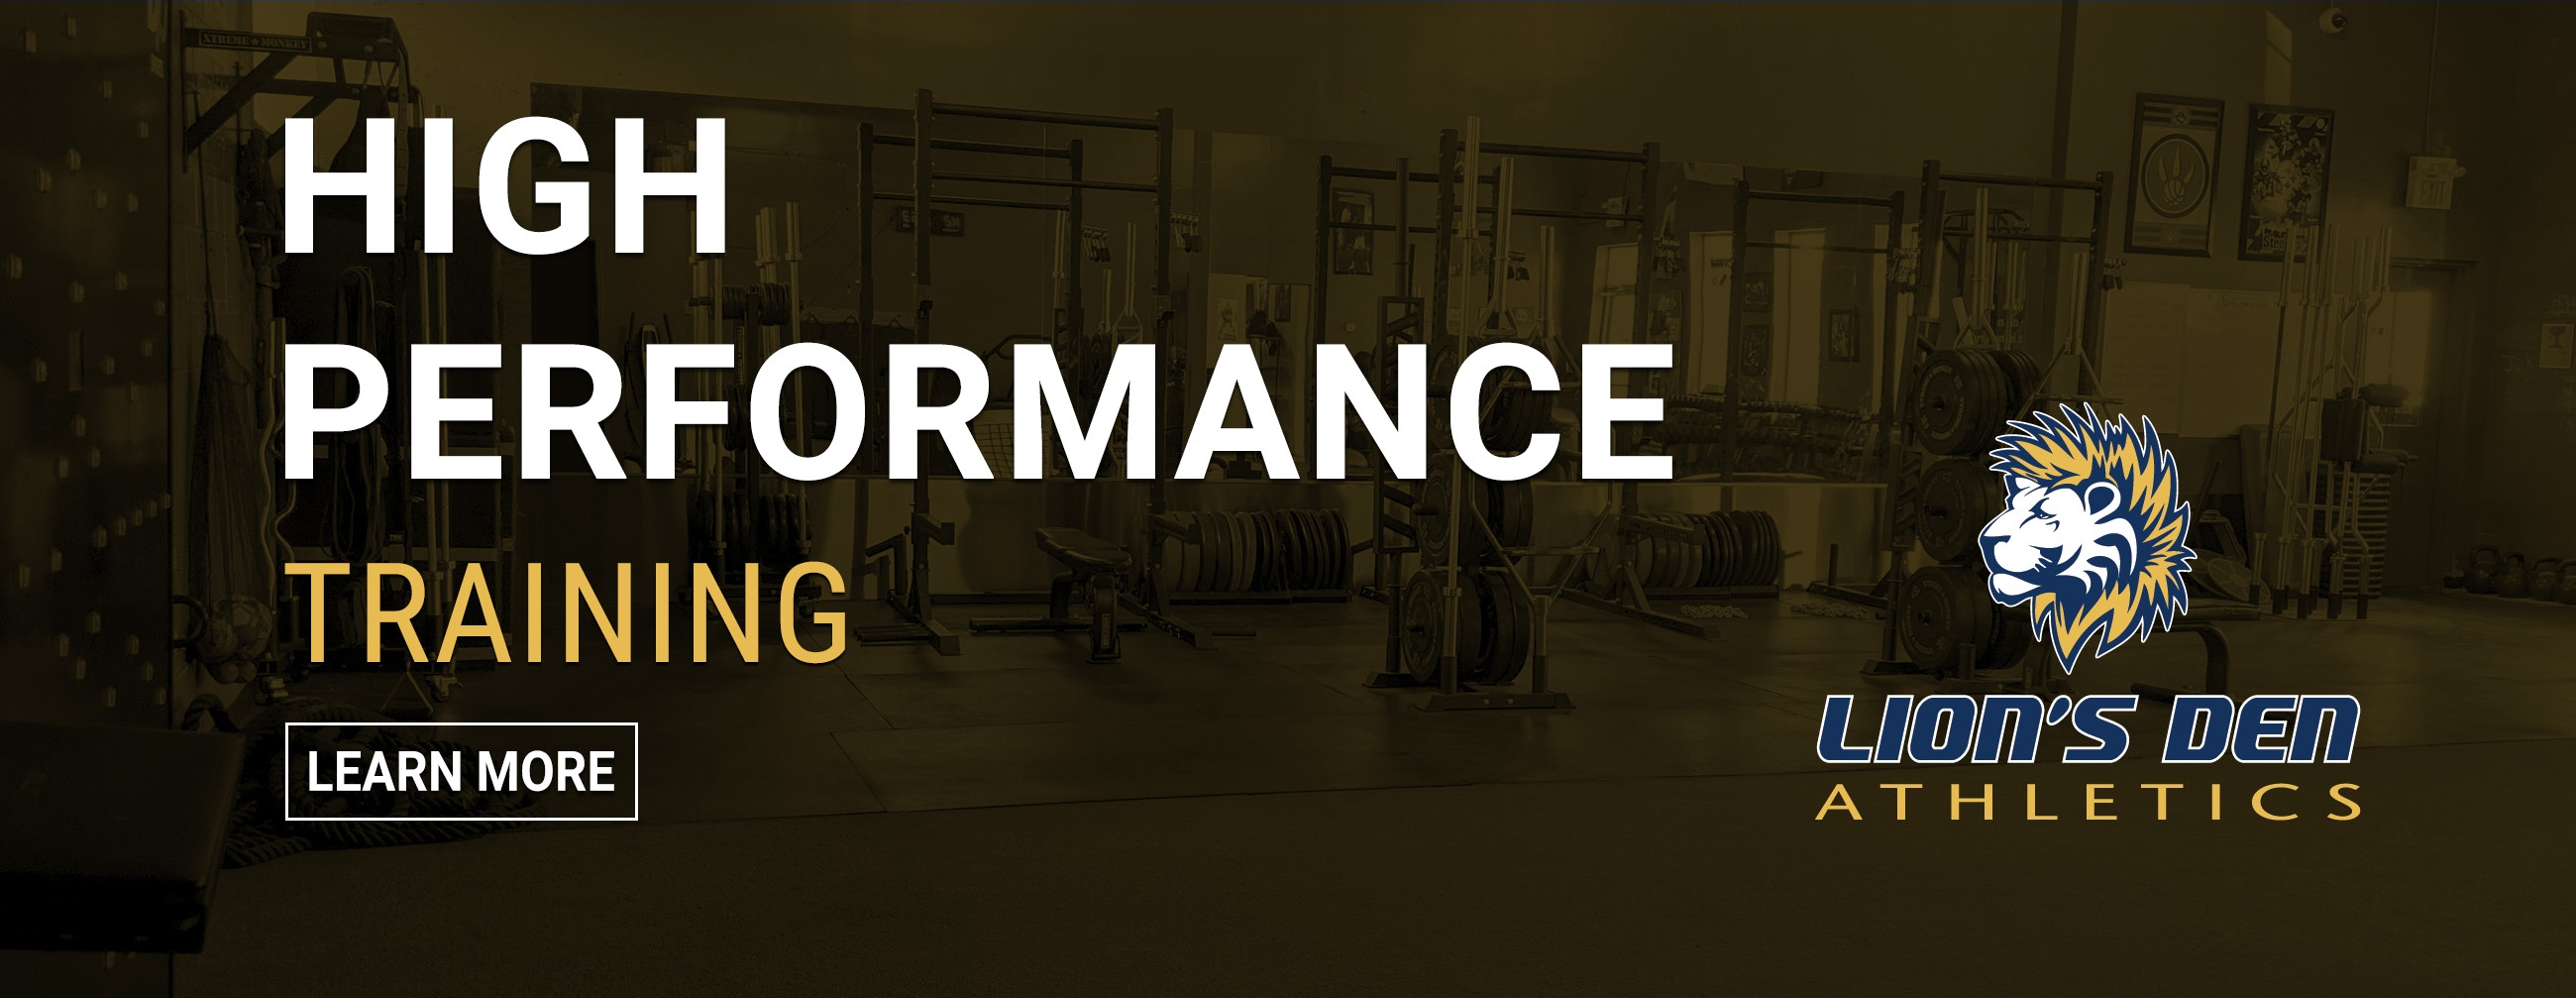 HIGH PERFORMANCE TRAINING